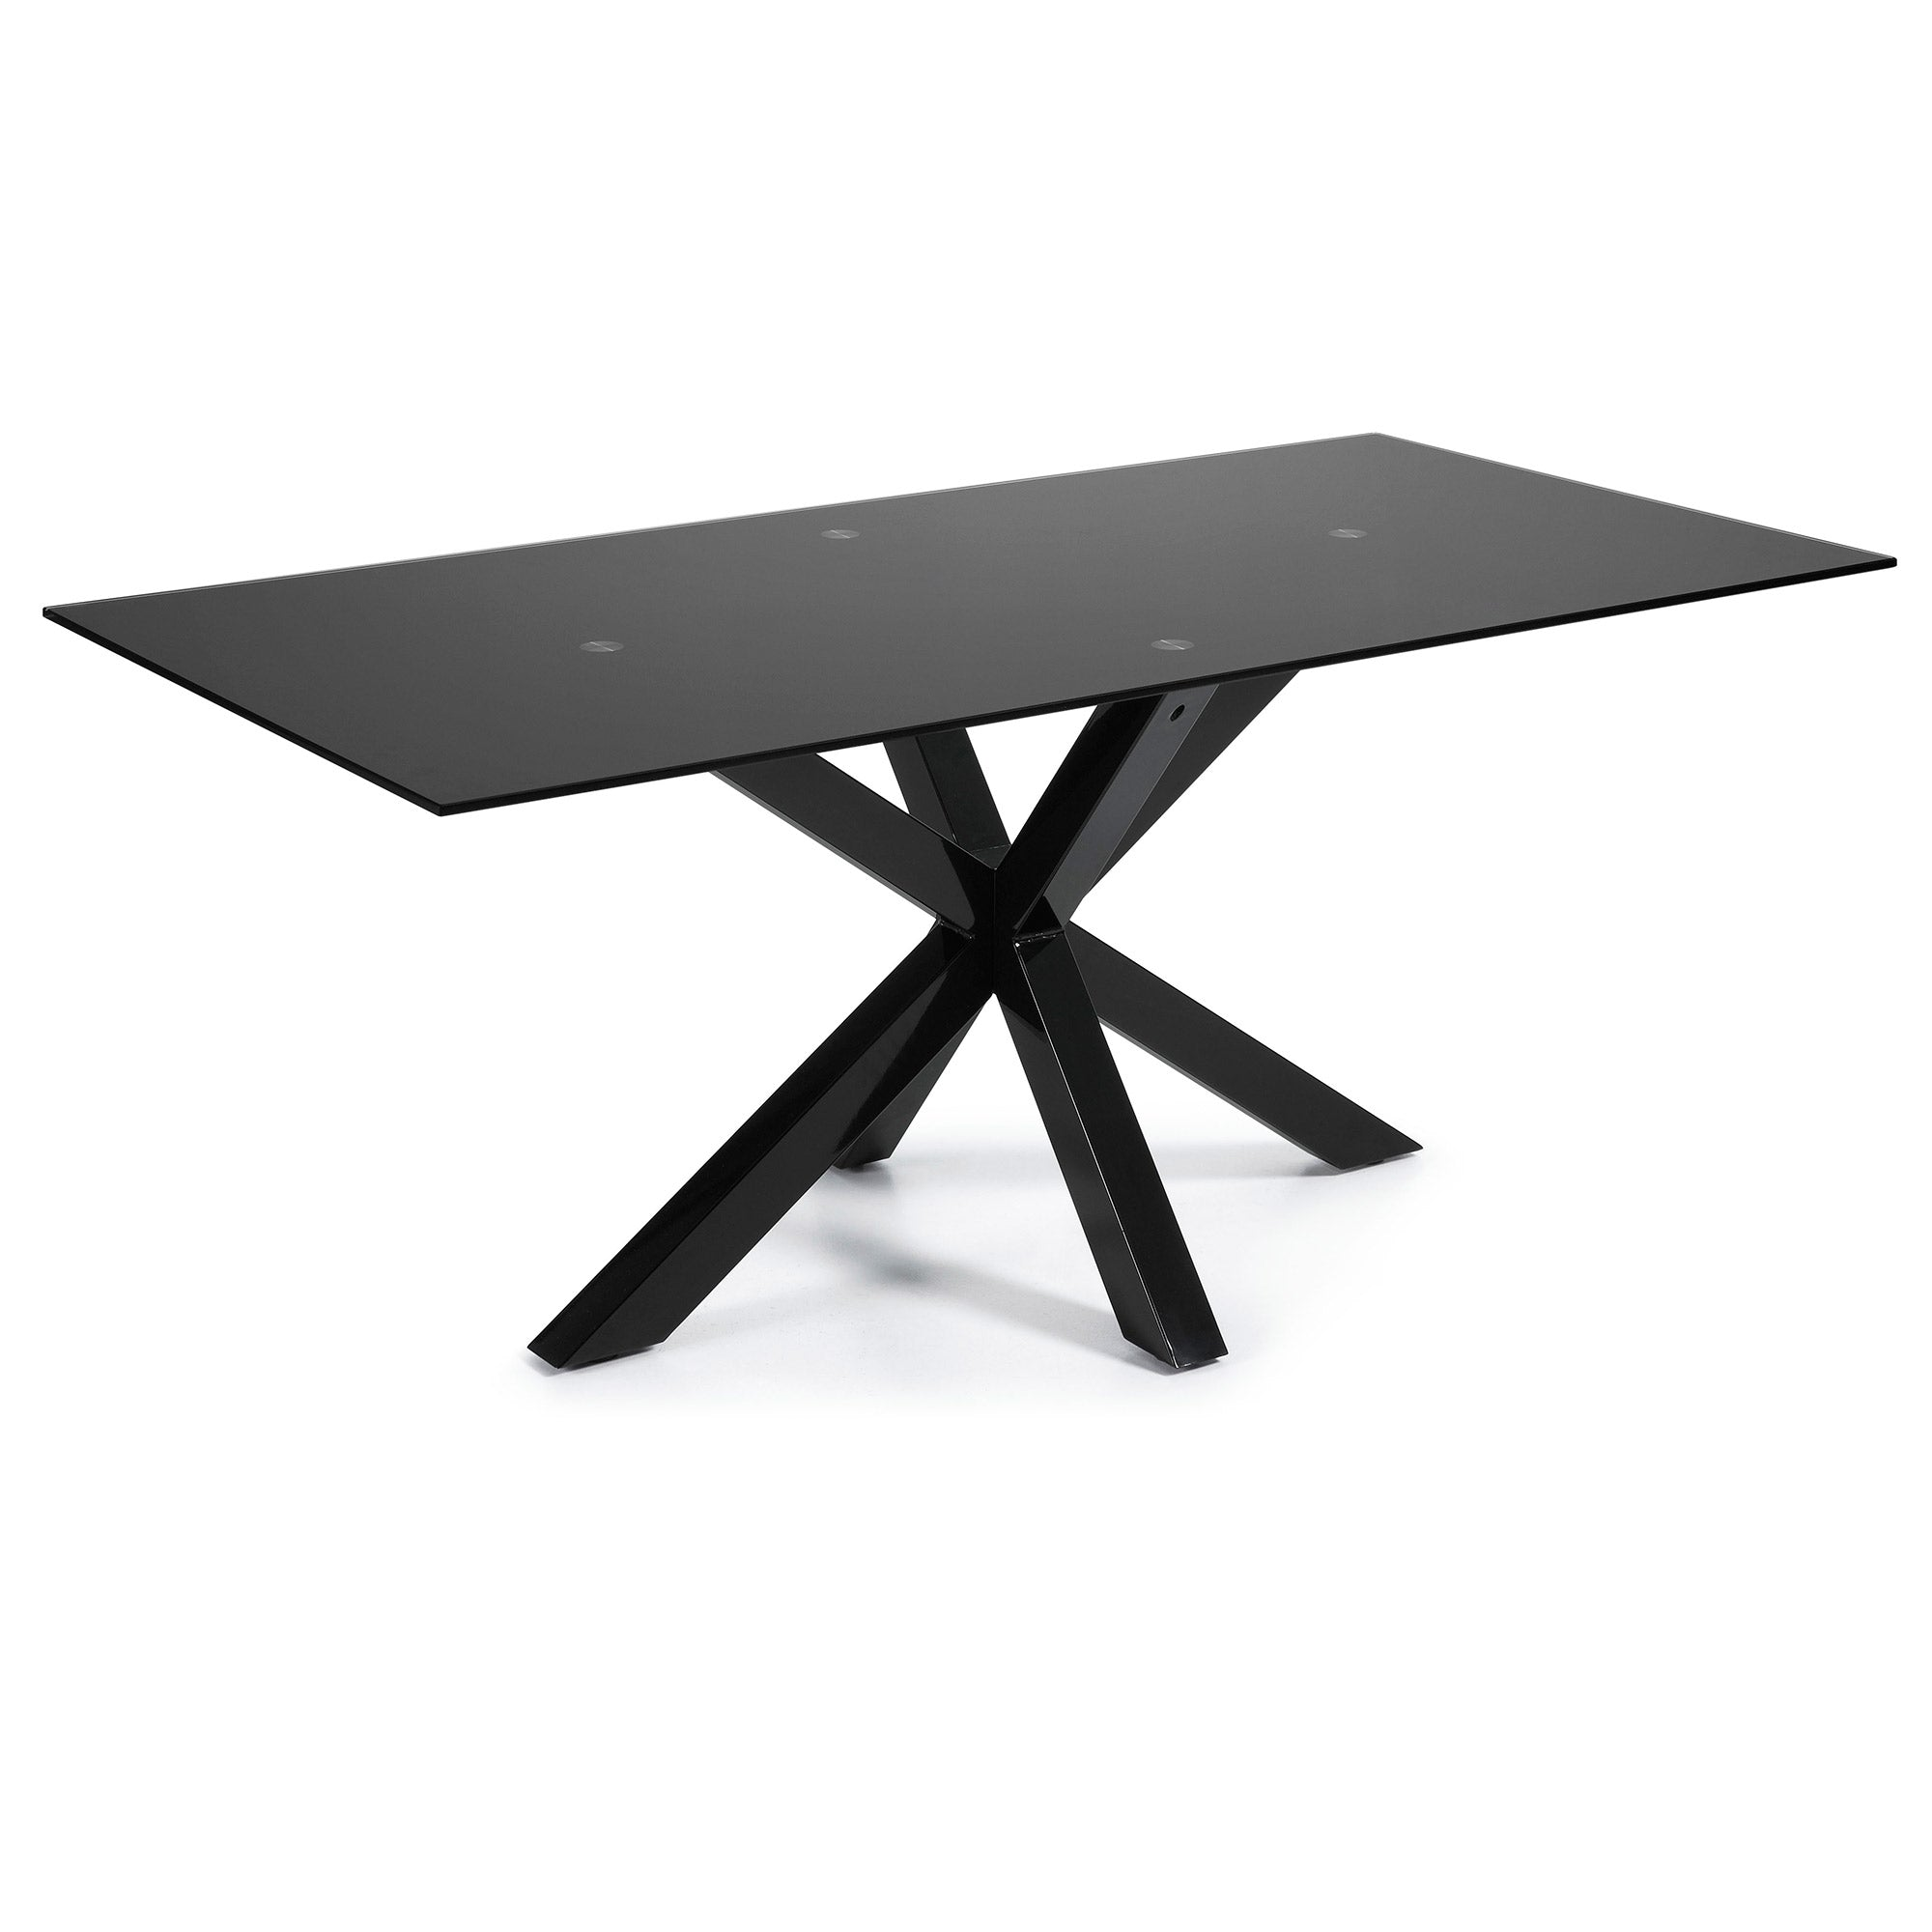 Mermi Dining Table 2m Epoxy Black Glass Black - C408C01, Dining Table - Home-Buy Interiors